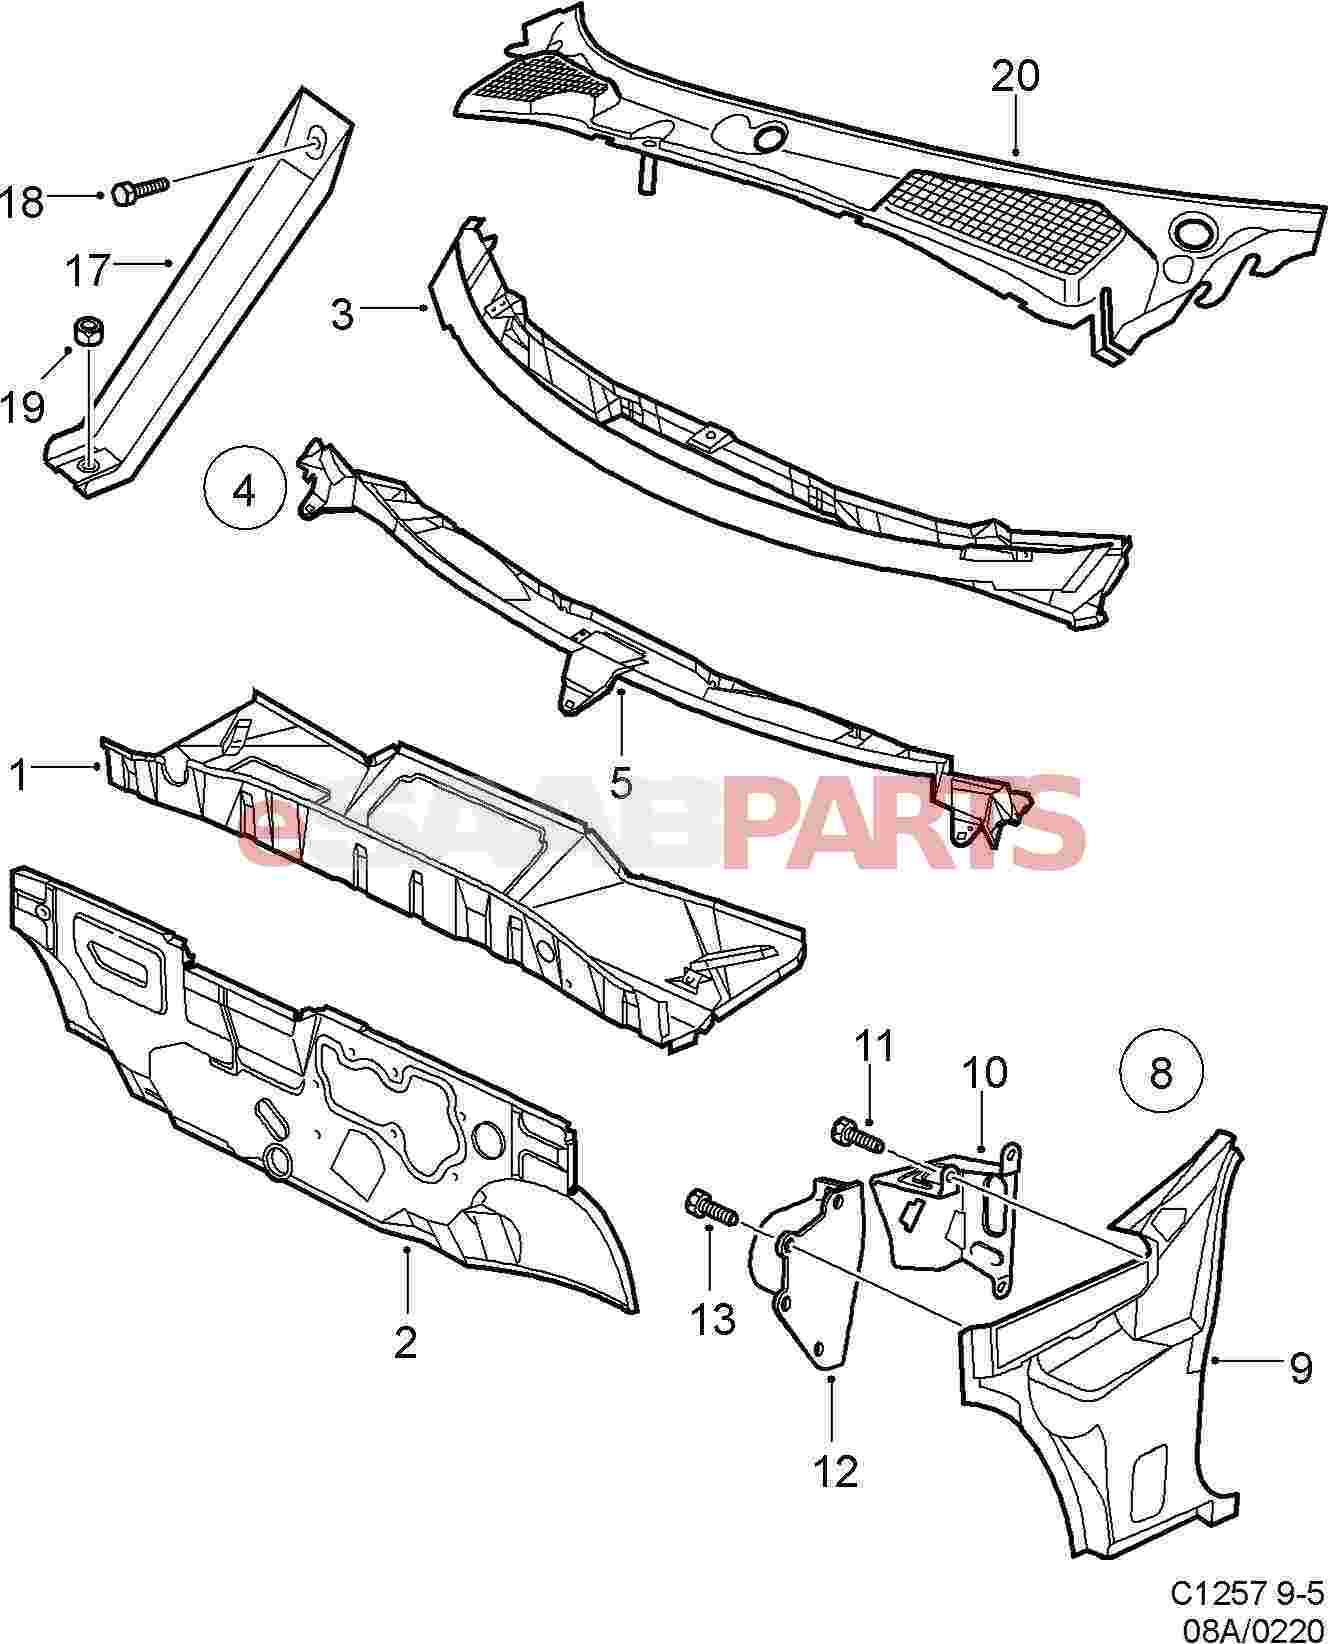 9959 Spreader Plate Set together with Saab Socket Plate 12778464 in addition ELECTRICAL SYSTEM 13709 besides Honda Odyssey Engine Splash Shield further RepairGuideContent. on saab 9 3 front plate